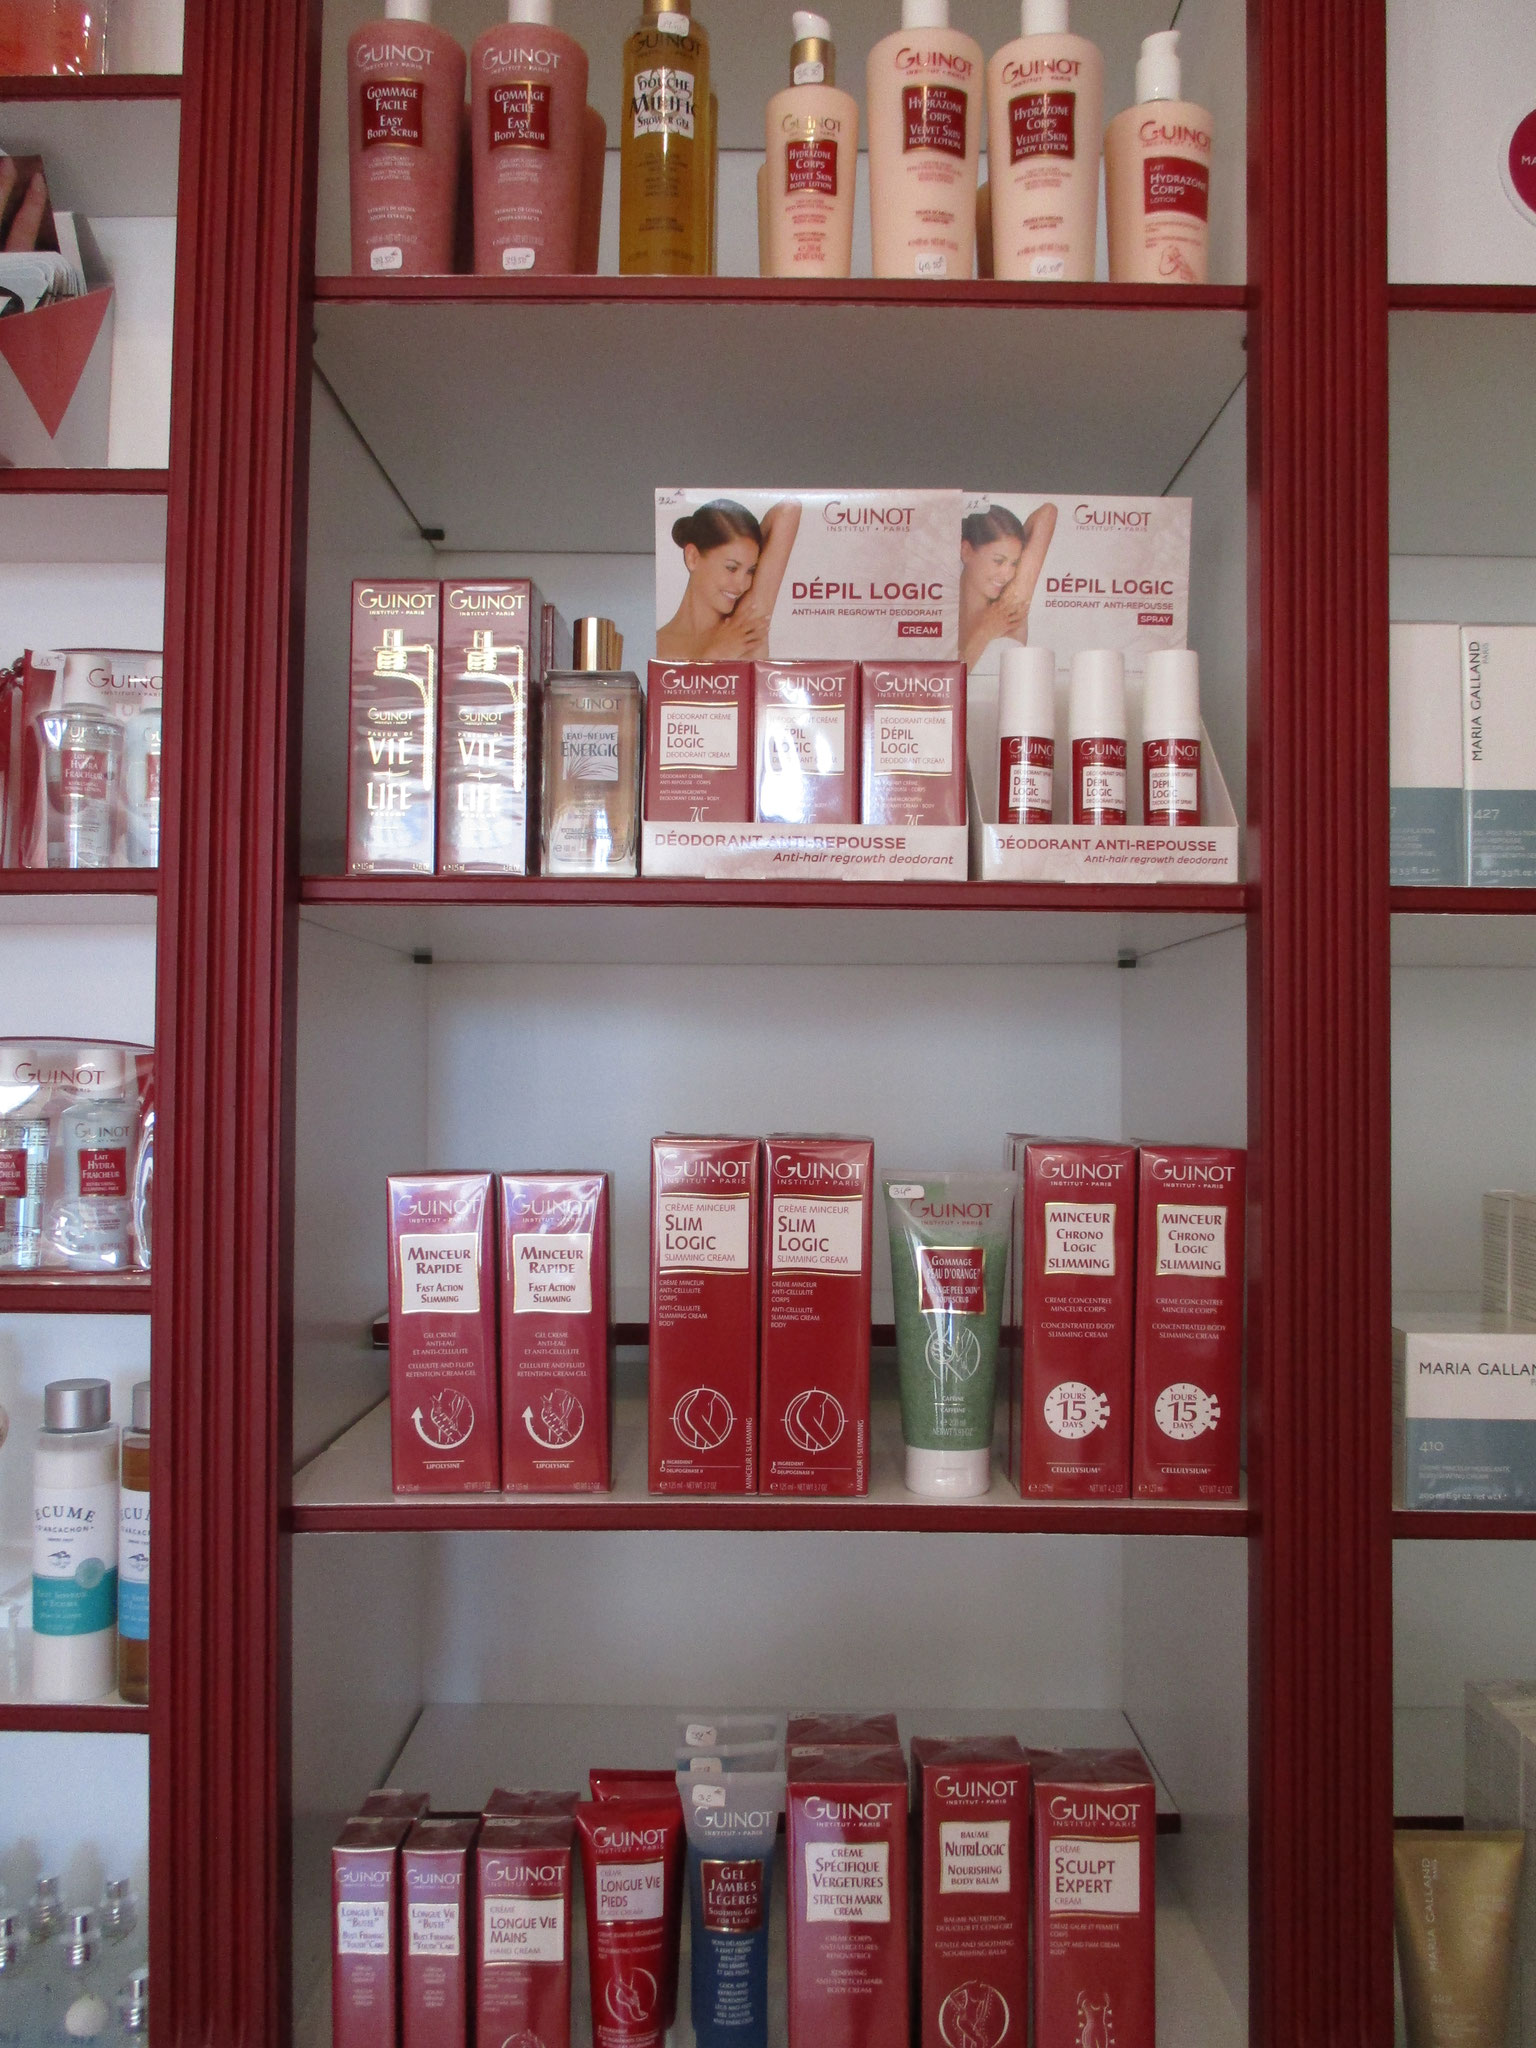 Prodduits corps Guinot Institut Grain de Beauté